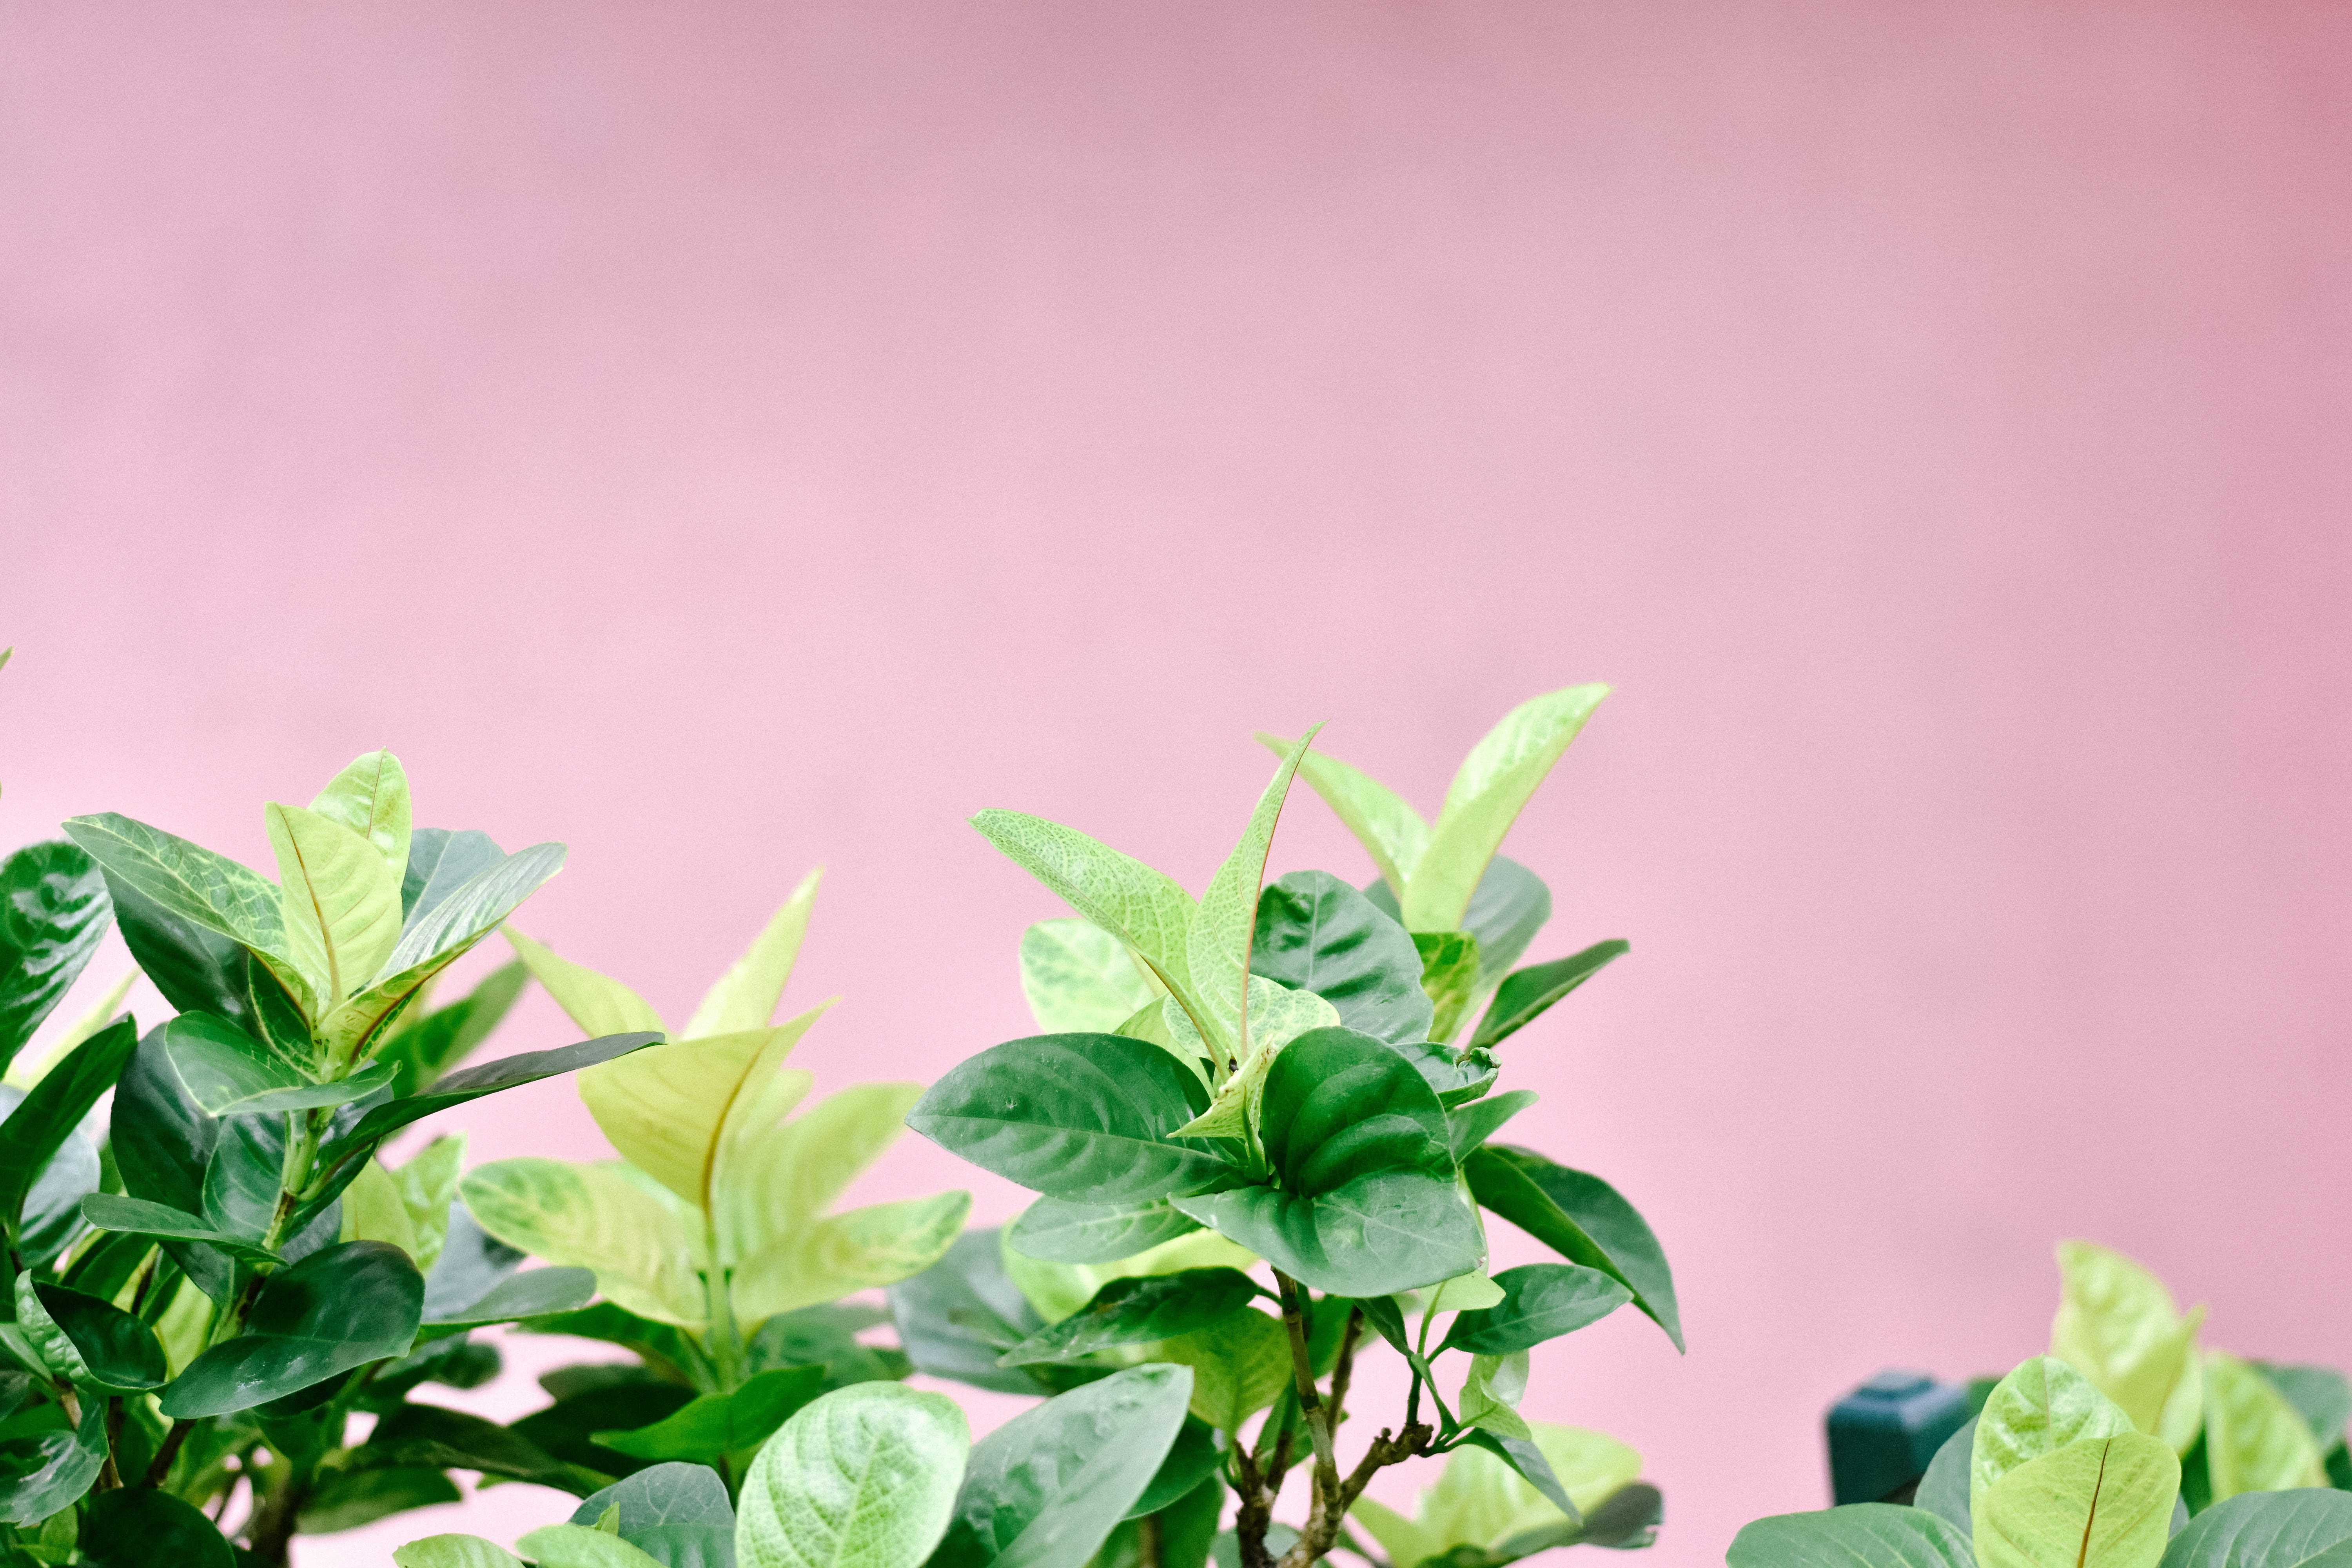 focus photo of green leafed plant